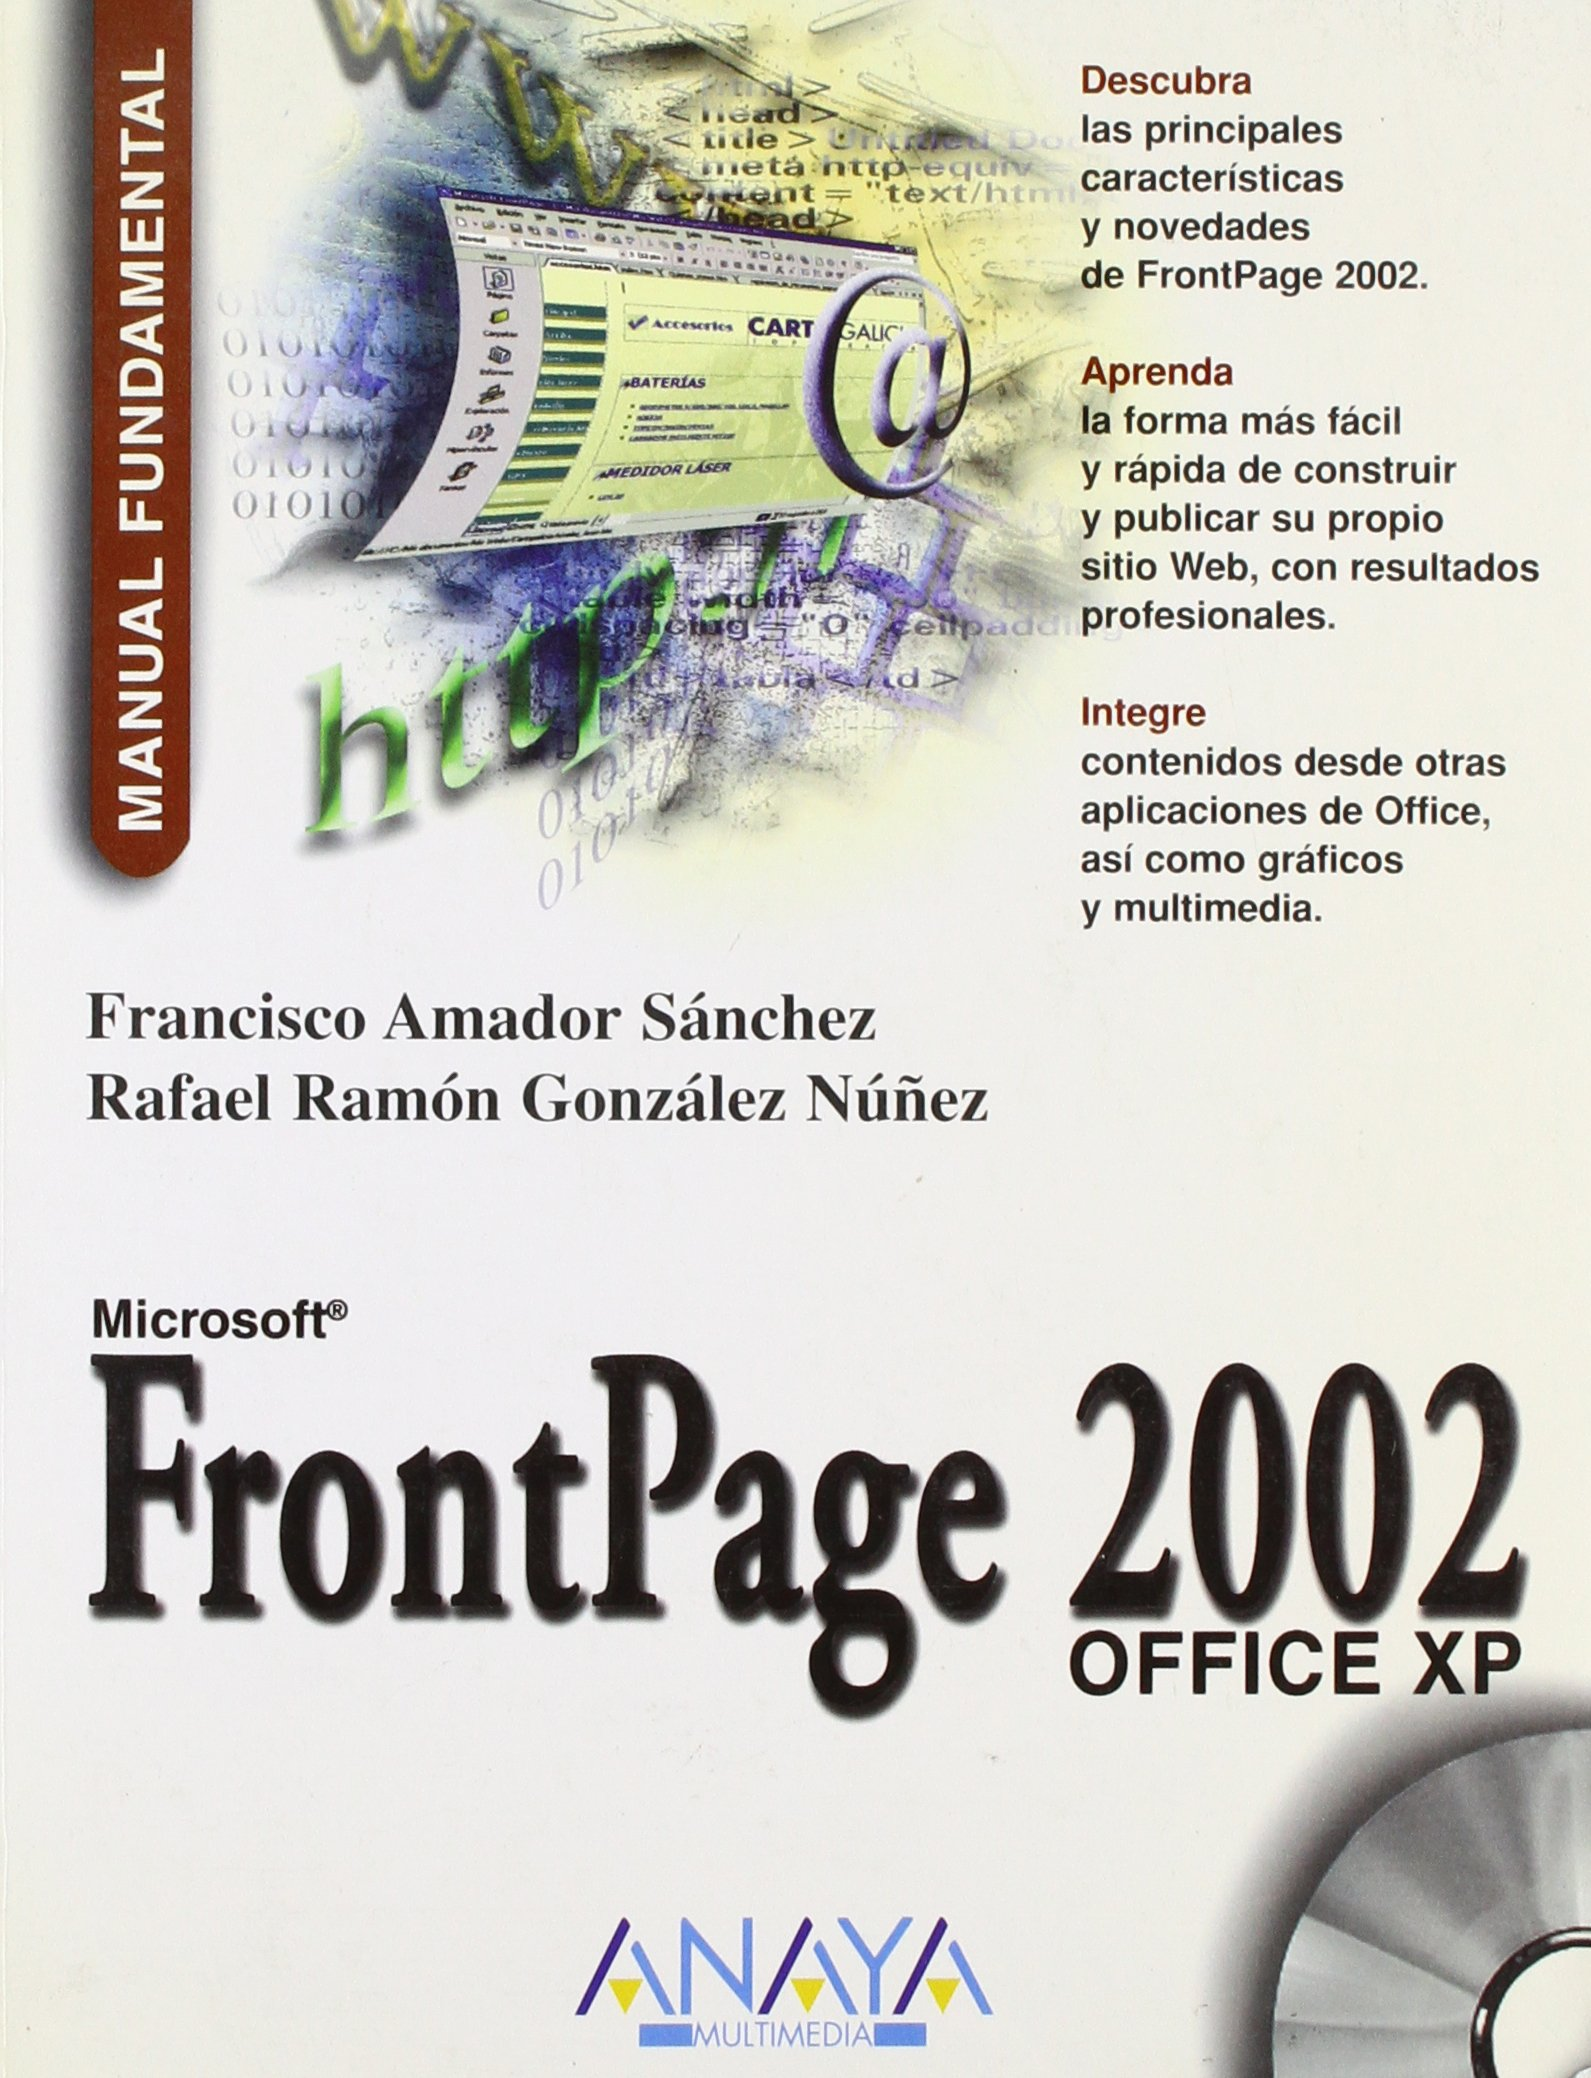 Download Microsoft FrontPage 2002 Office XP - Manual Fundamenmtal (Spanish Edition) ebook